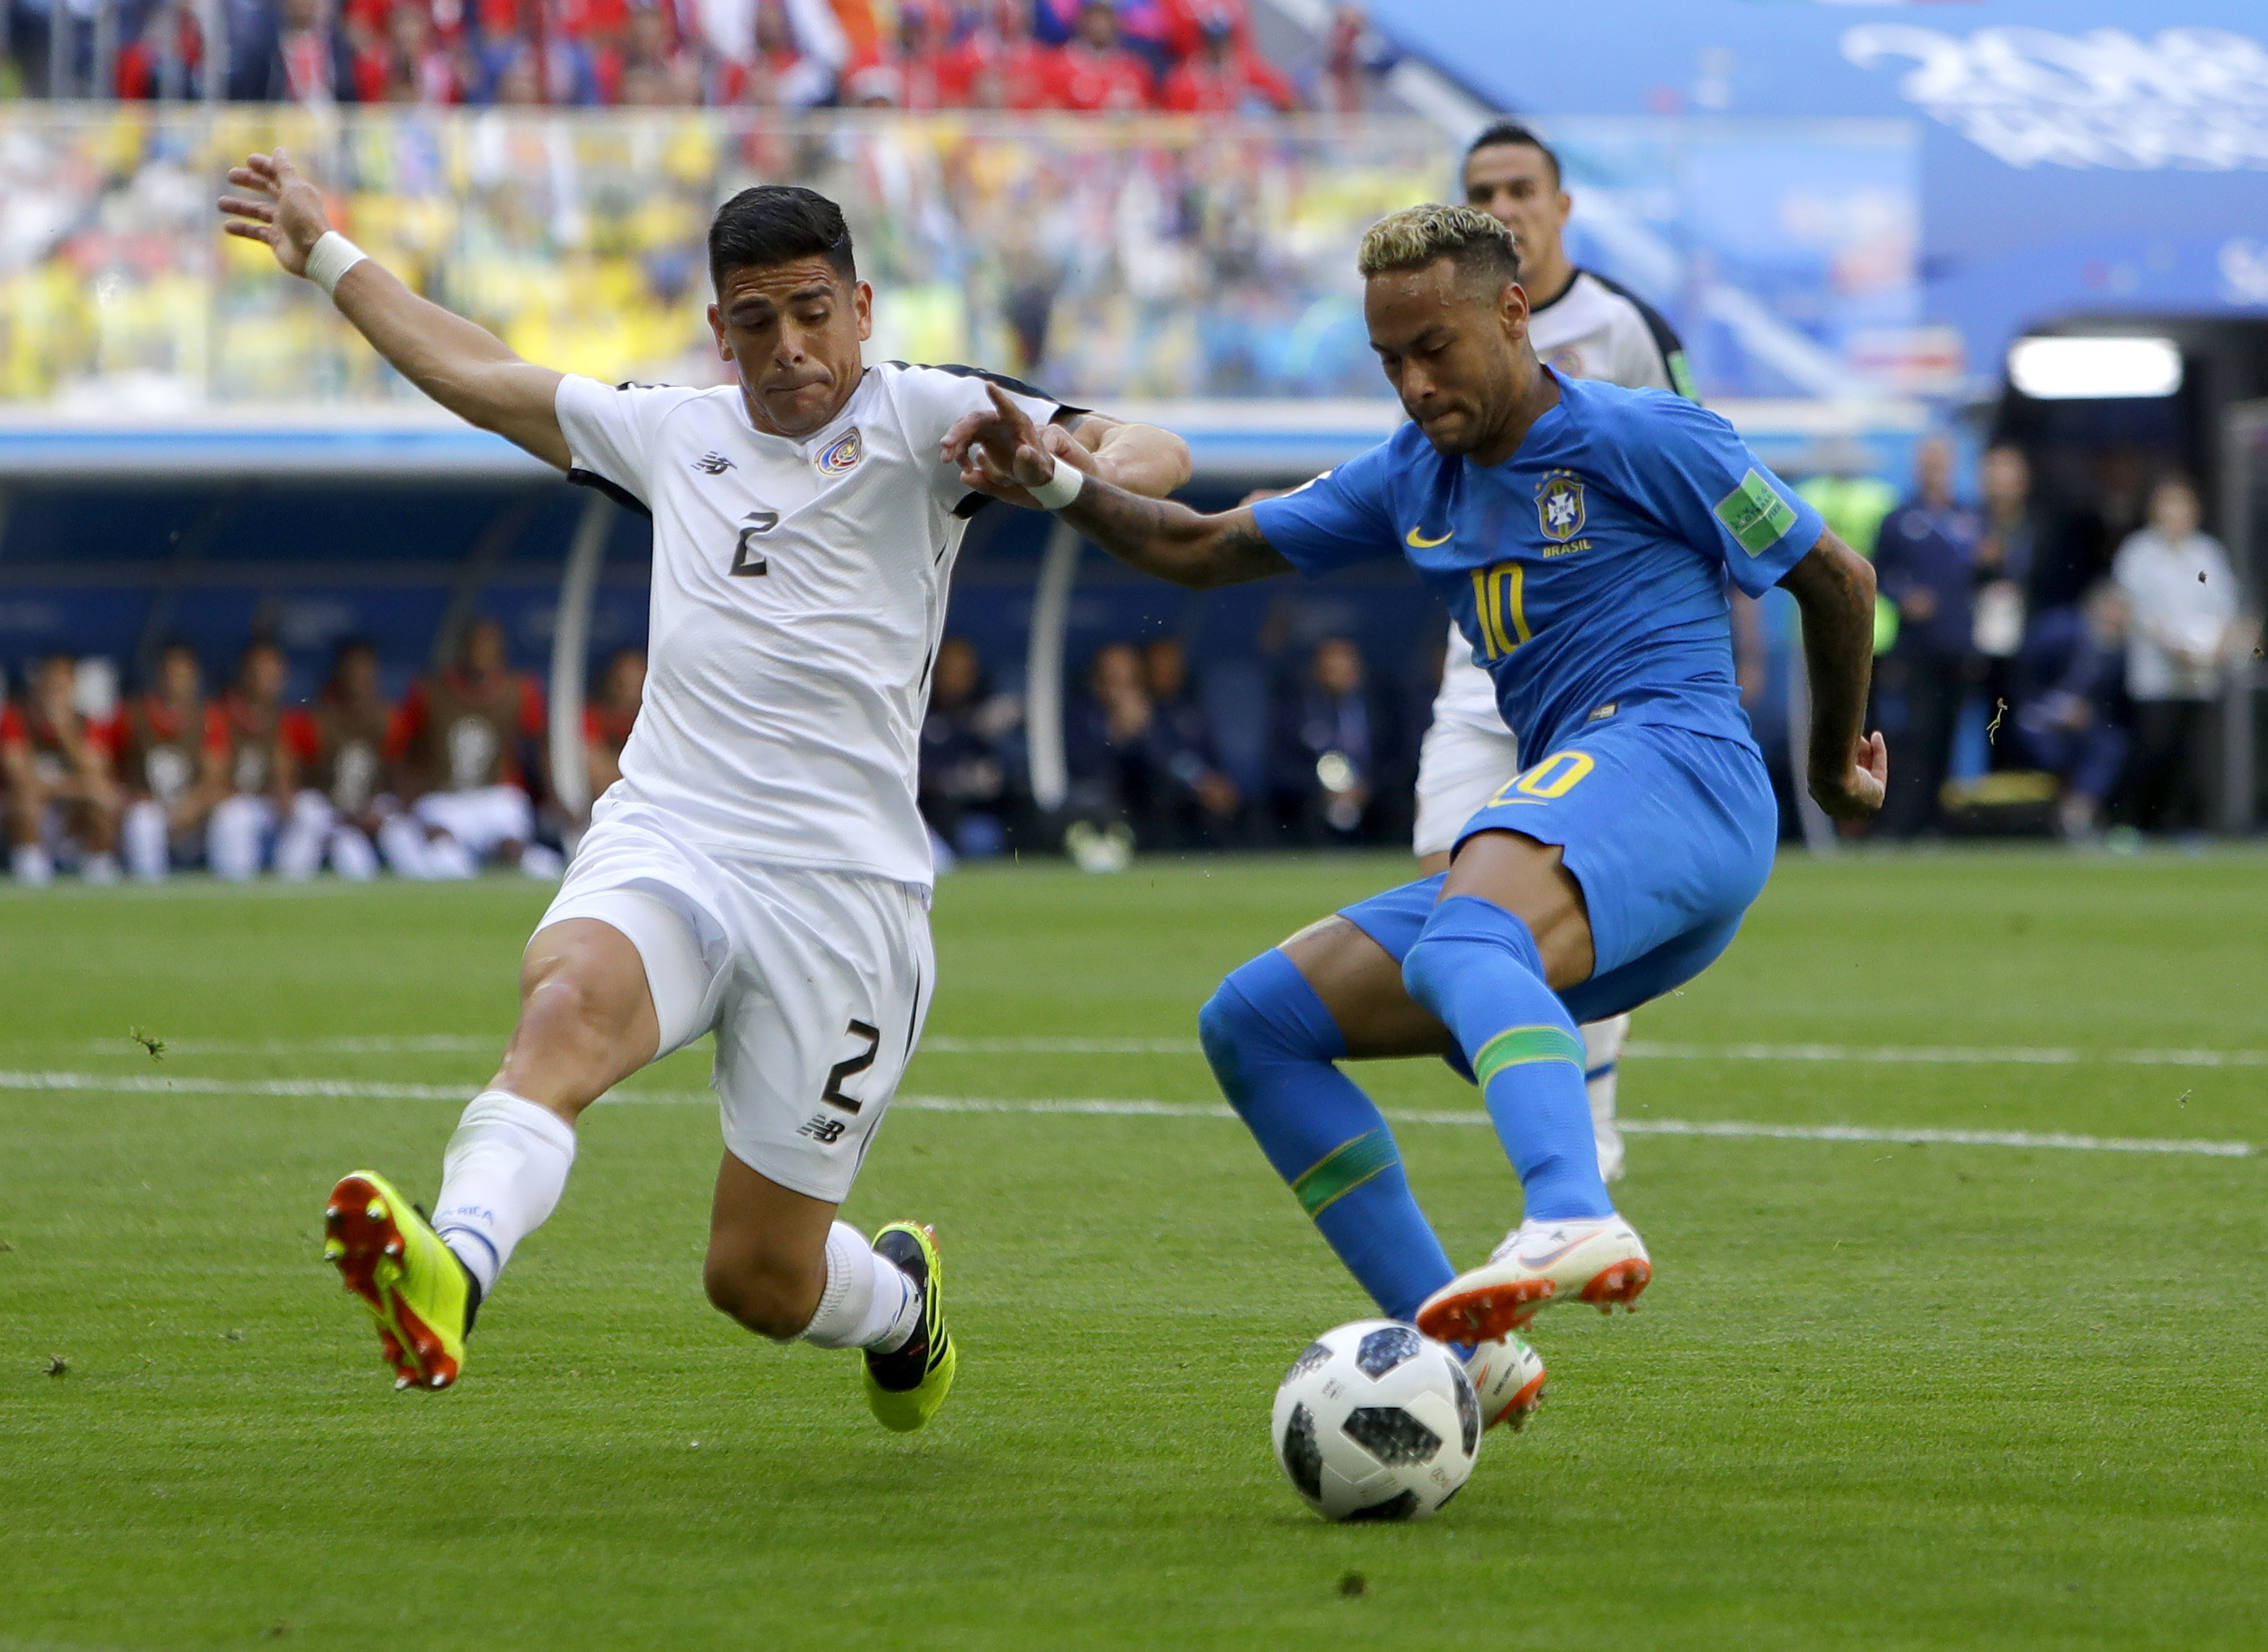 "<div class=""meta image-caption""><div class=""origin-logo origin-image none""><span>none</span></div><span class=""caption-text"">Brazil's Neymar, right, looks to kick the ball past Costa Rica's Johnny Acosta during the group E match in the St. Petersburg Stadium on Friday, June 22. (Alastair Grant/AP Photo)</span></div>"